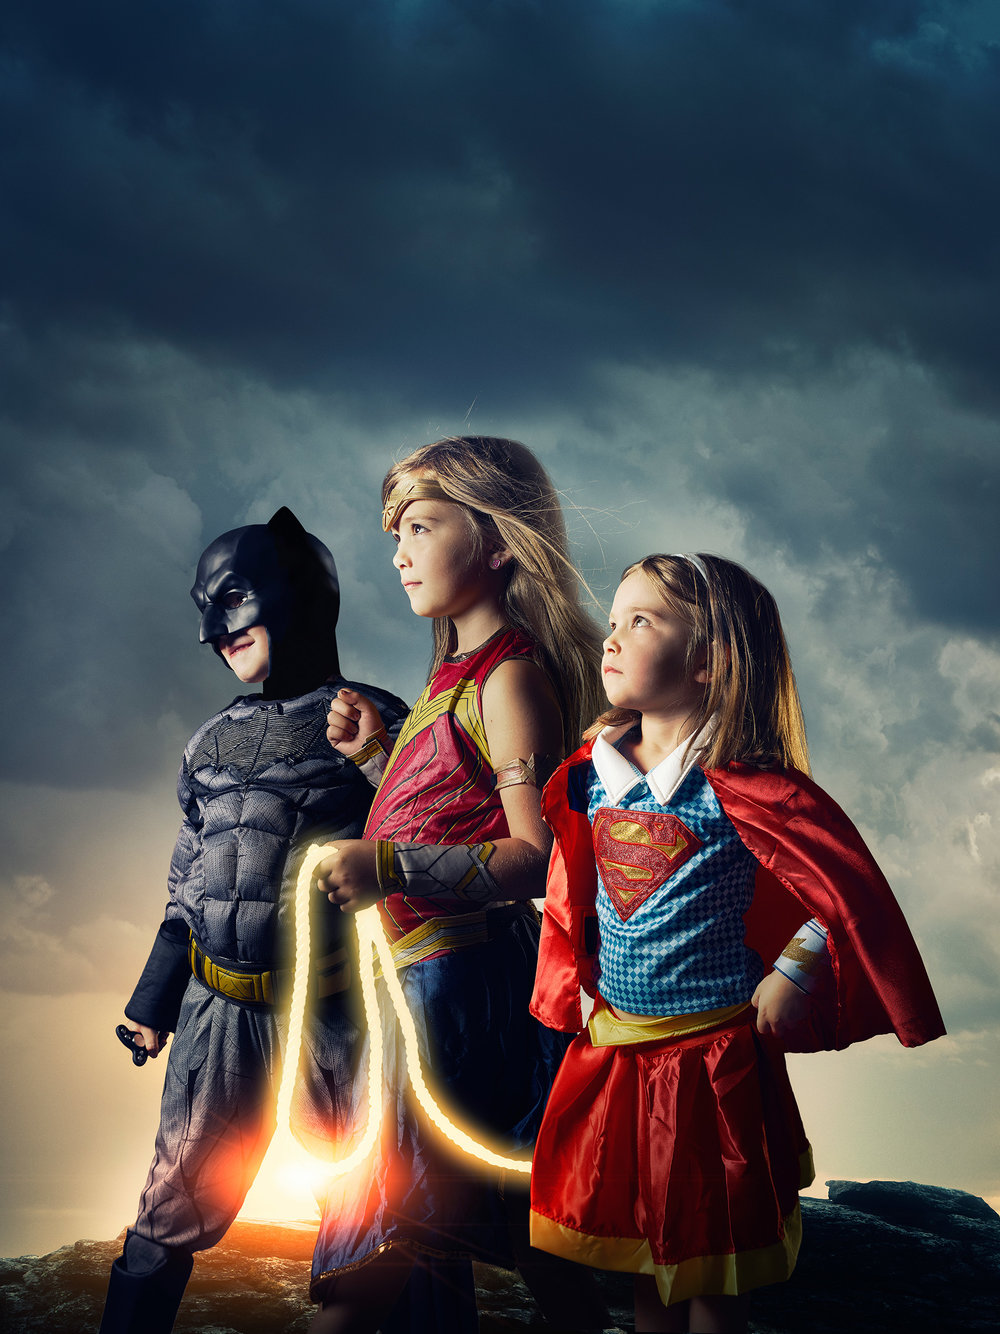 Kids Justice League 3649_lr.jpg